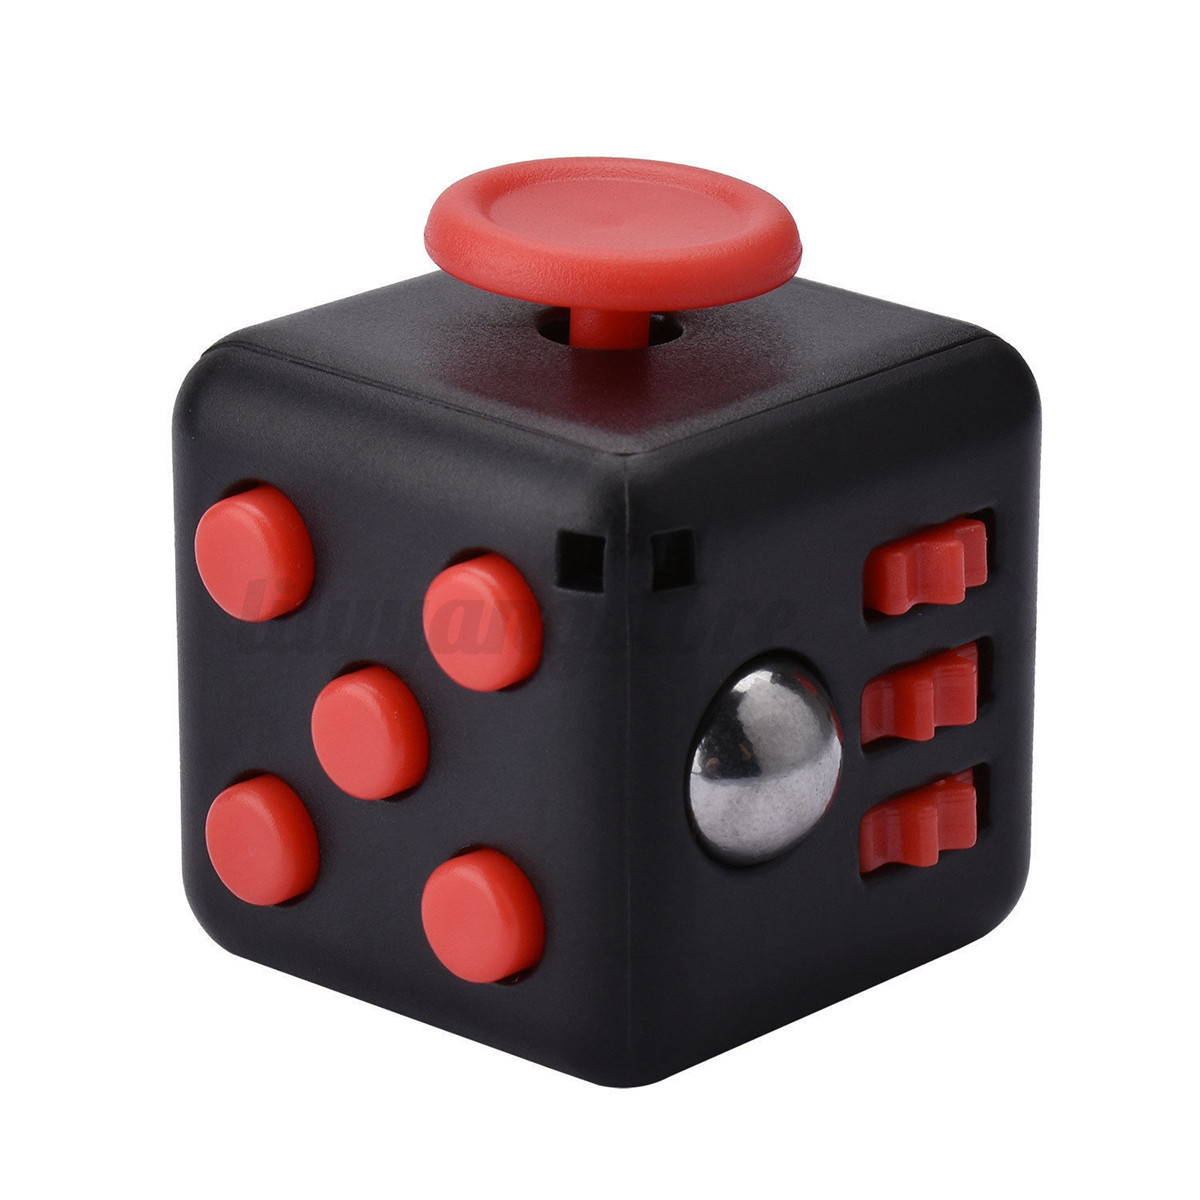 Toys For Adults For Stress : Fidget anxiety stress relief cube focus side toy for